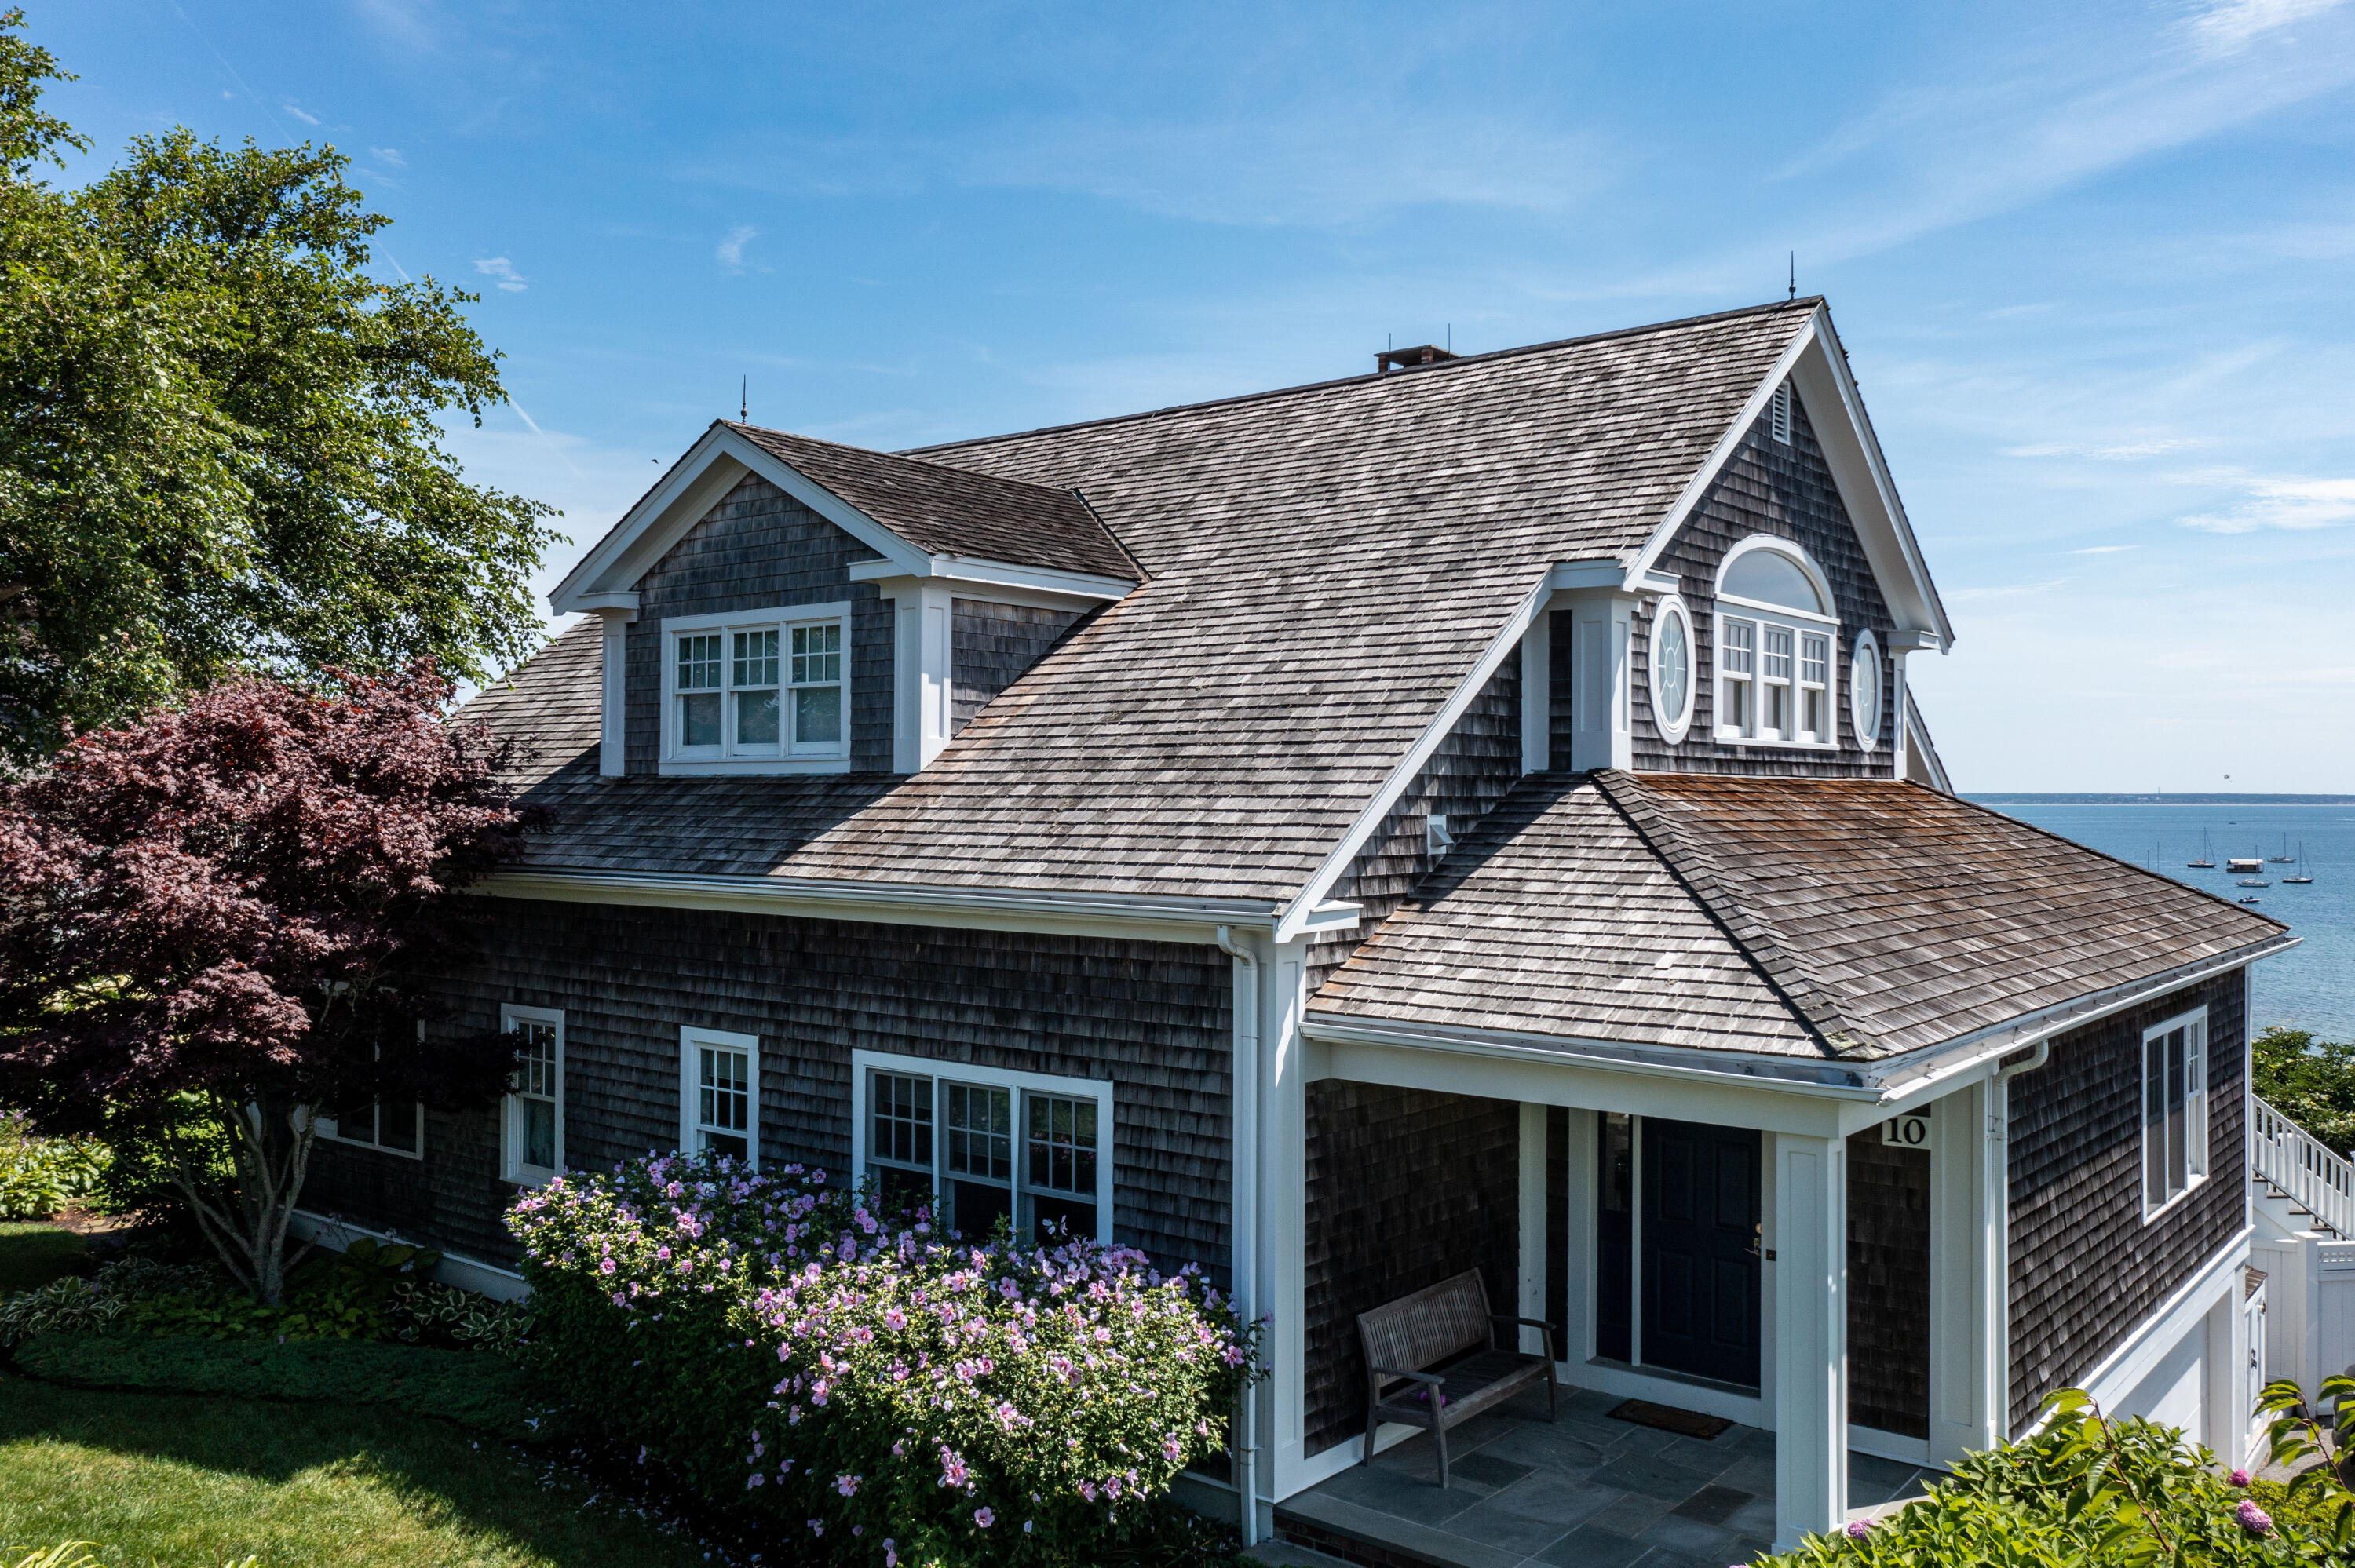 10 Telegraph Hill Road, Provincetown MA, 02657 details